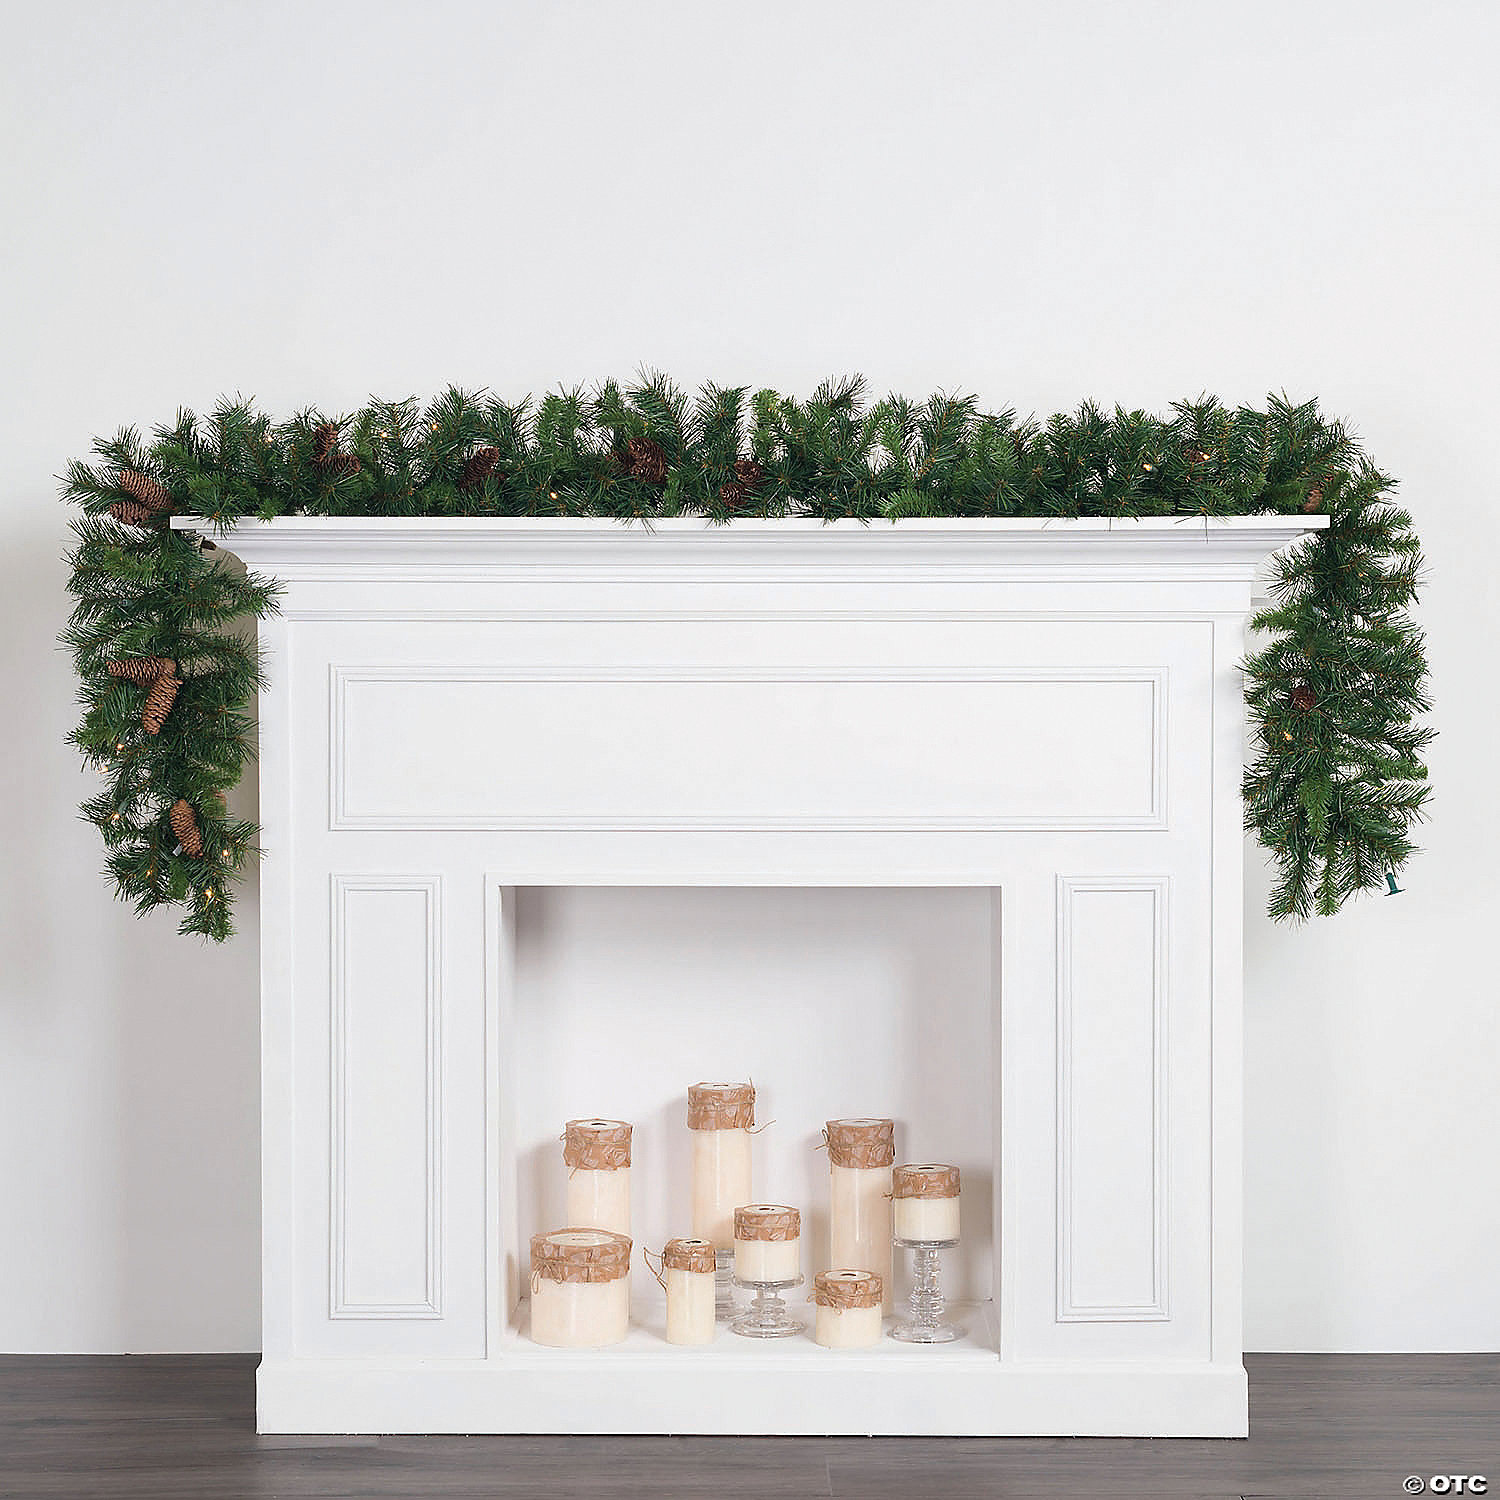 Cheyenne Christmas House 2020 Vickerman 9' Cheyenne Christmas Garland with Warm White Lights